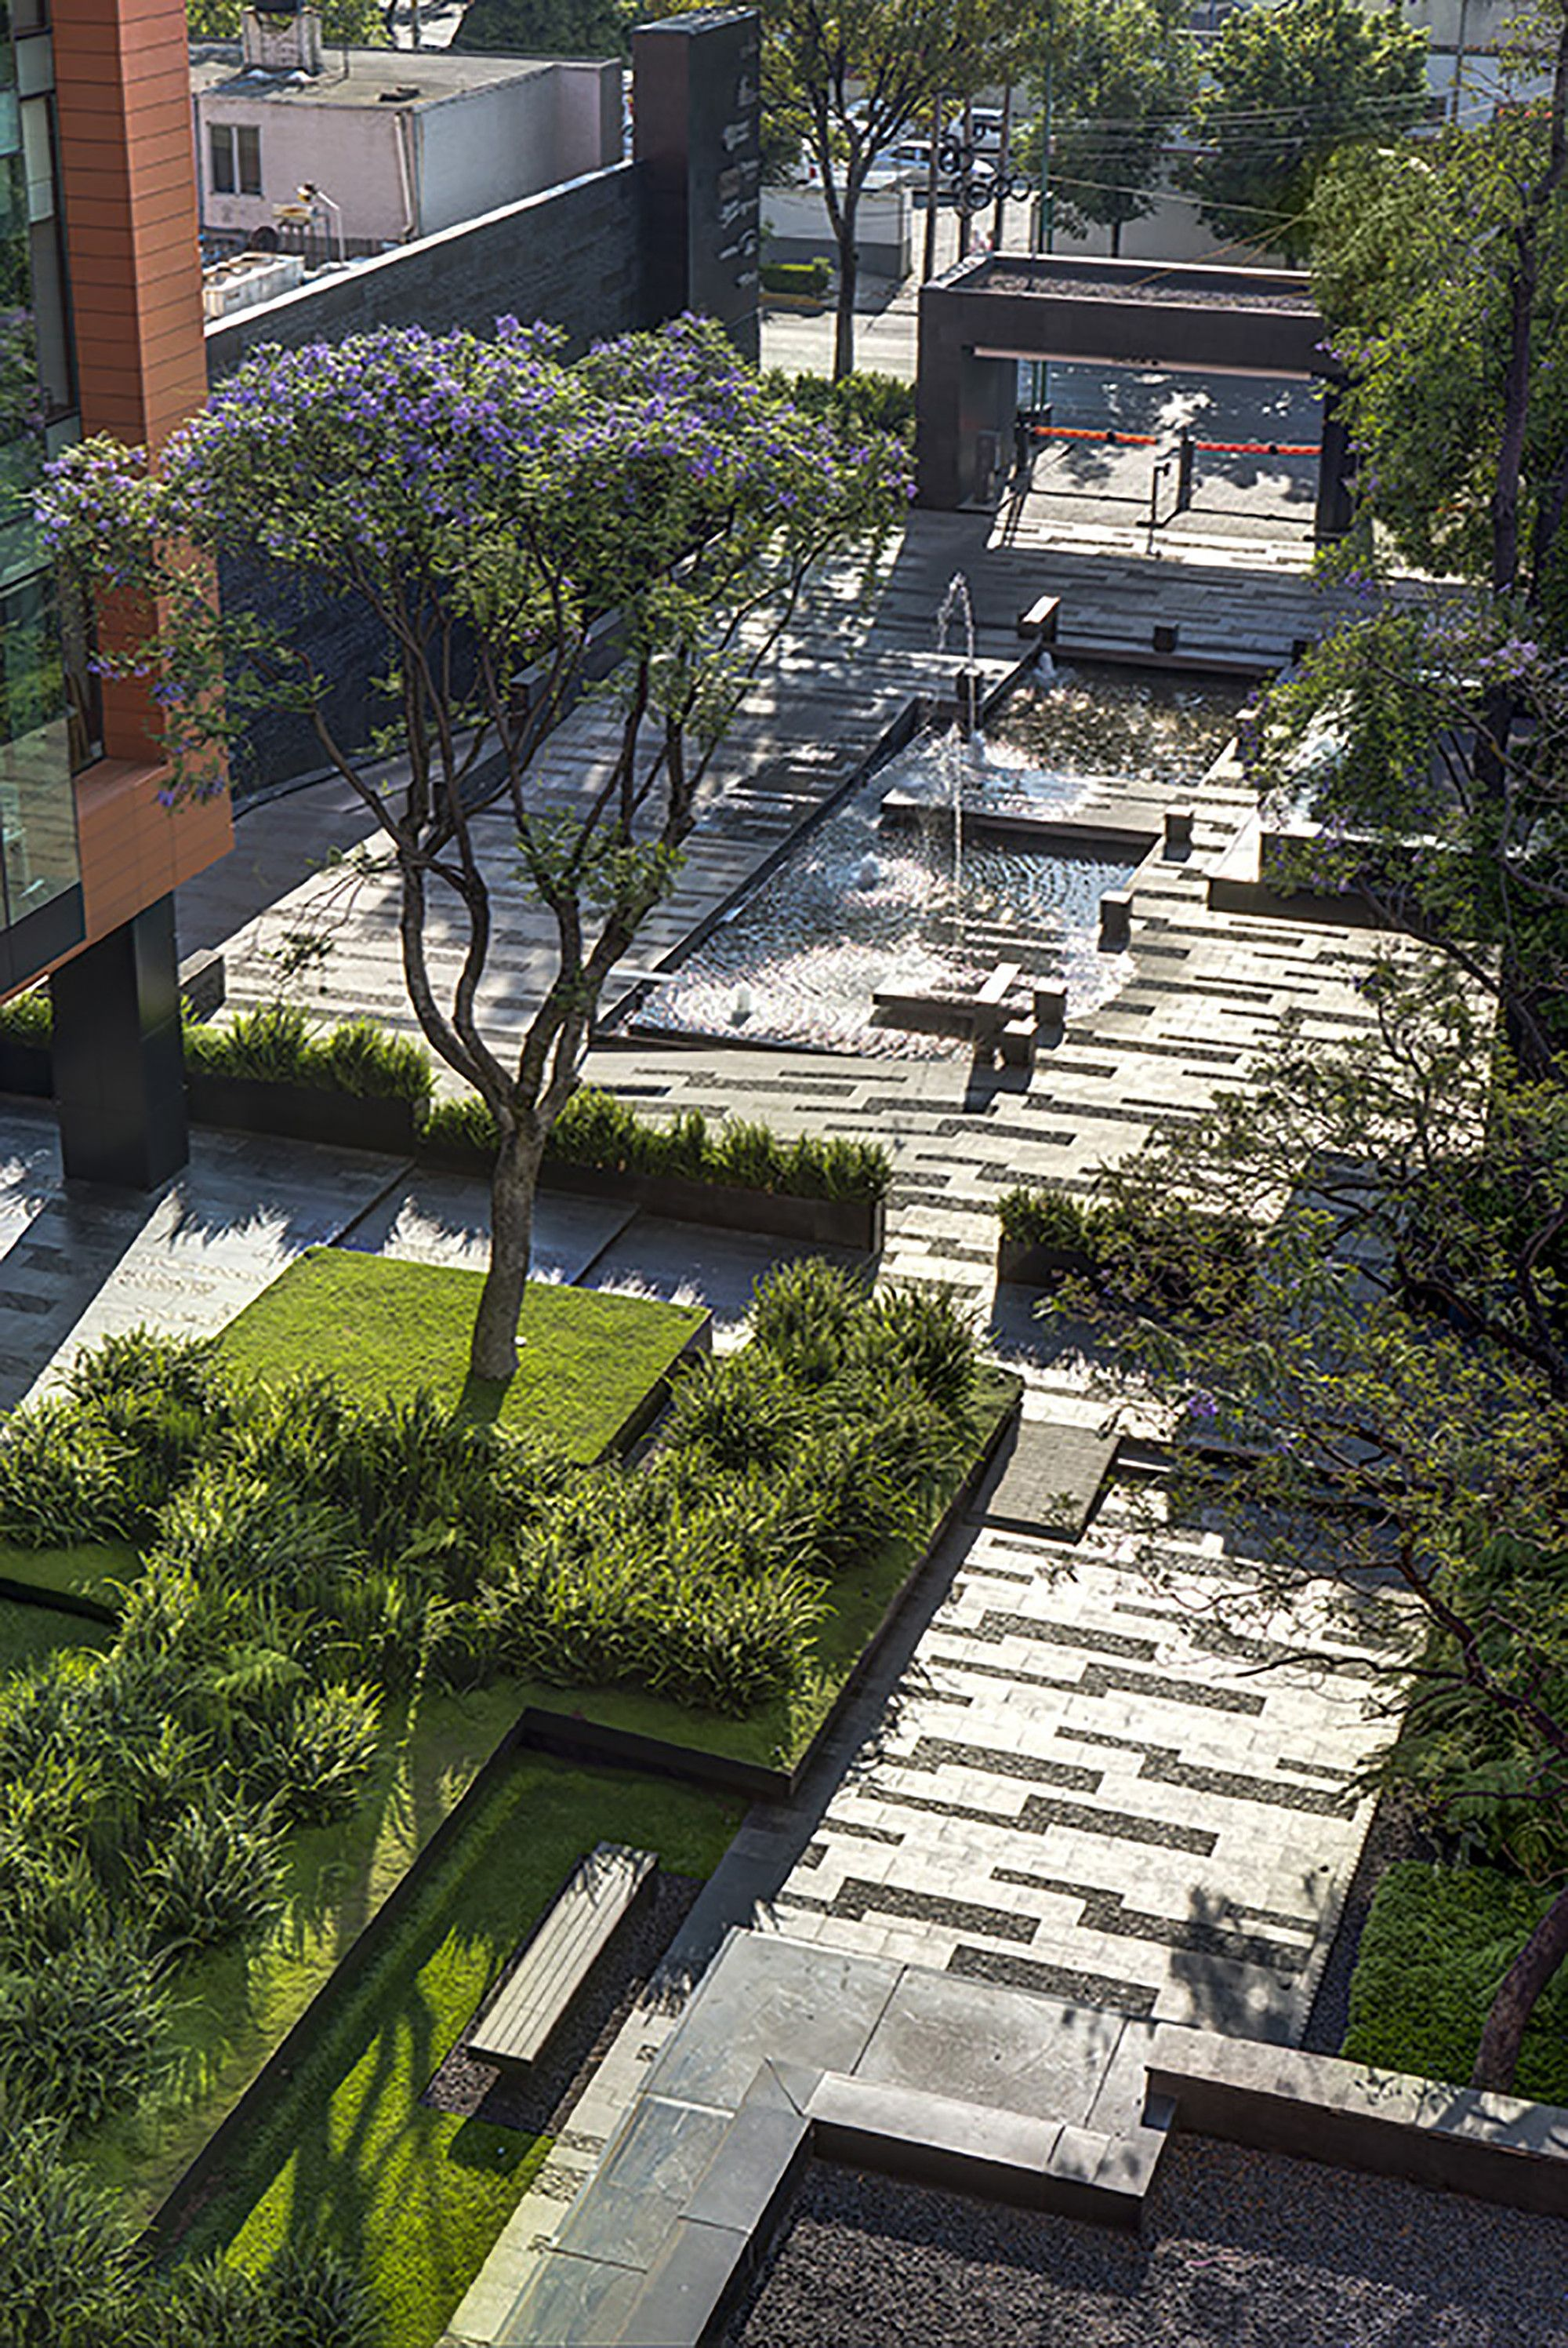 Galeria de paisagismo no campus corporativo coyoac n dlc for Virtual garden design